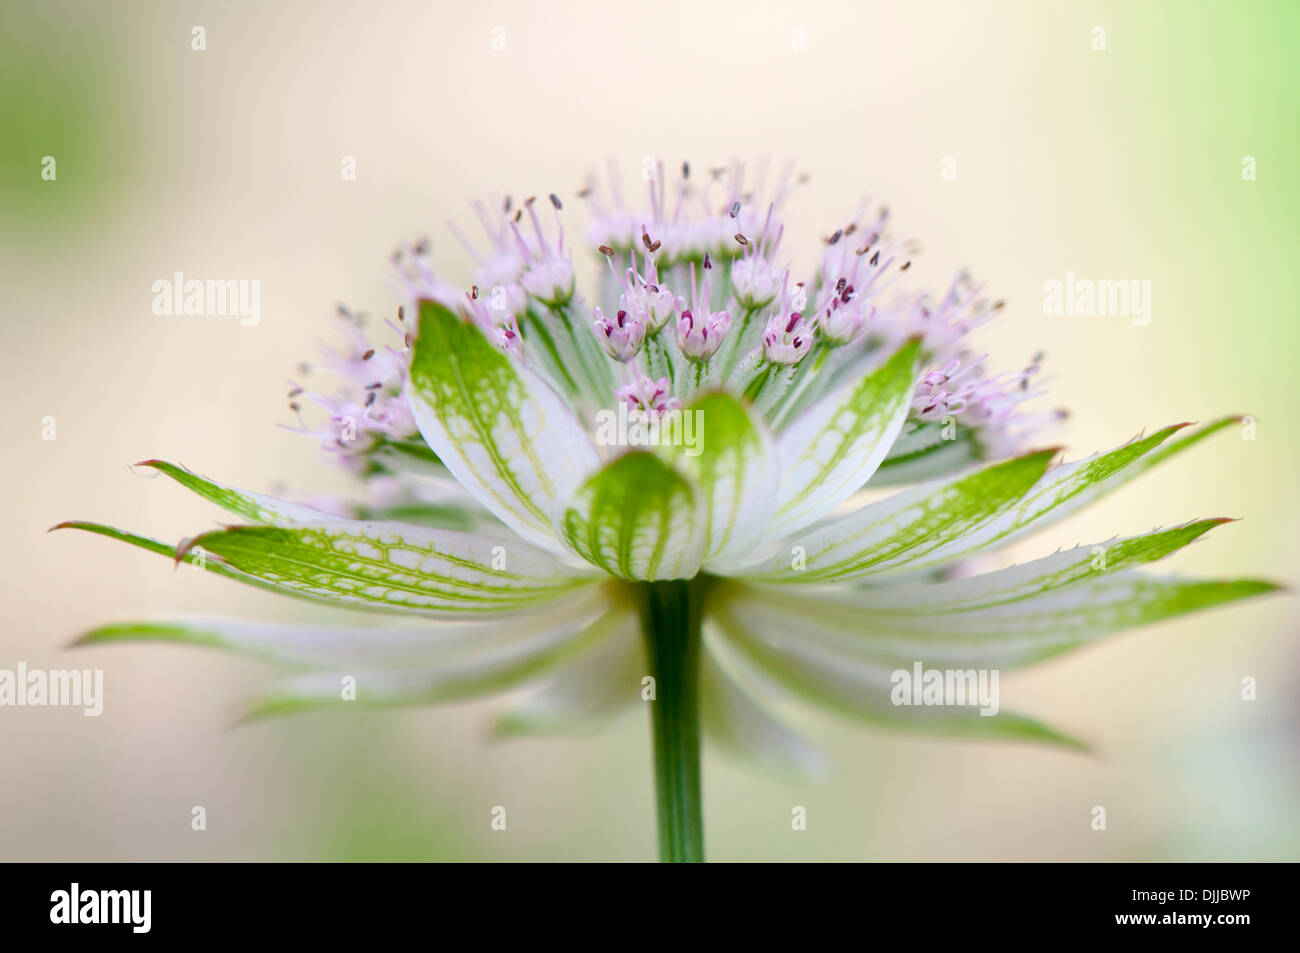 Image en gros plan d'un seul blanc/rose Astrantia major flower communément appelé Masterwort, image prise contre un fond mou Photo Stock